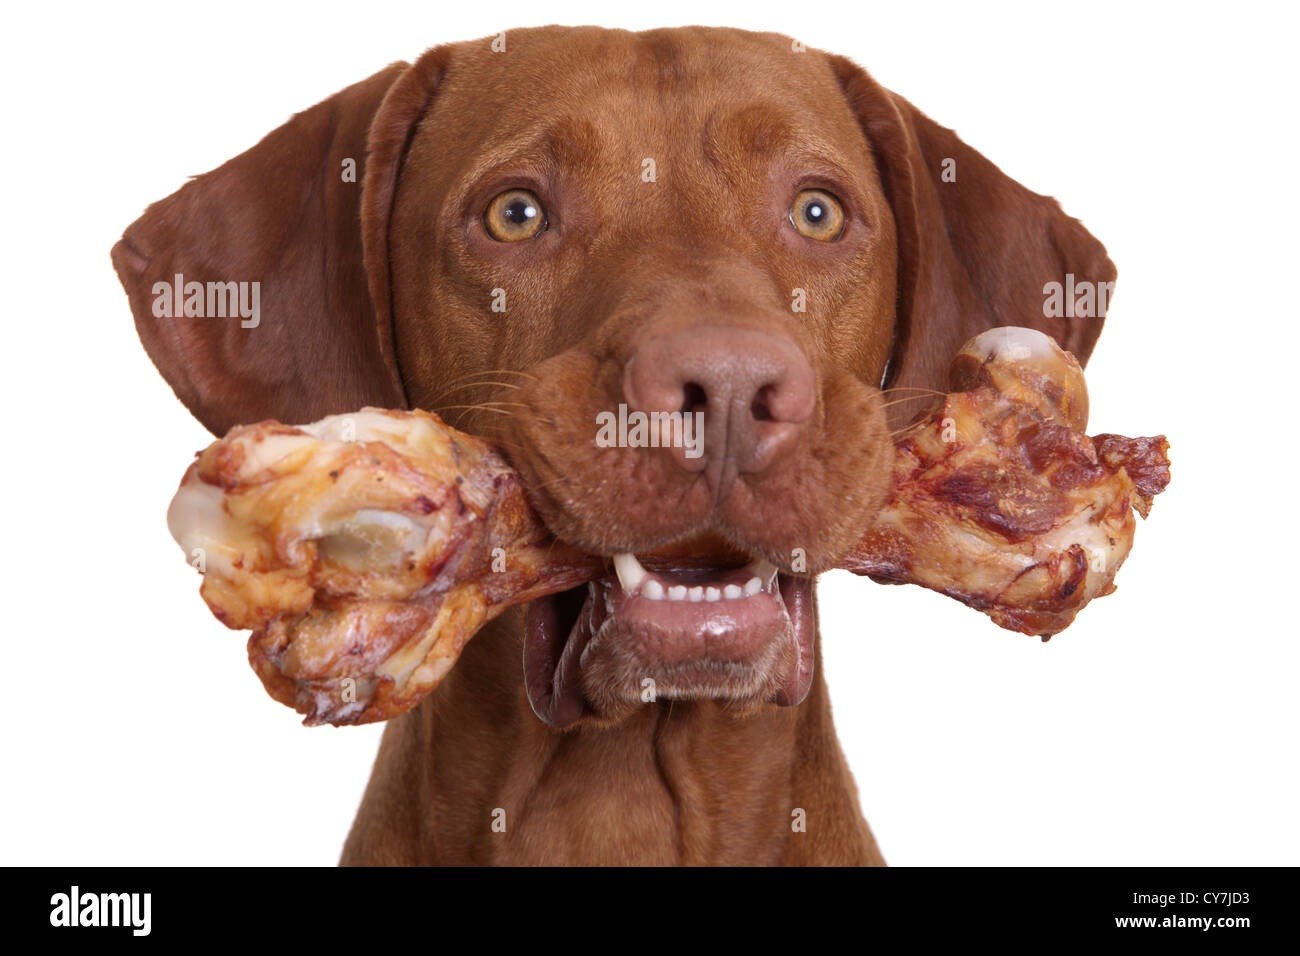 dog holding natural bone in mouth on white background - Stock Image